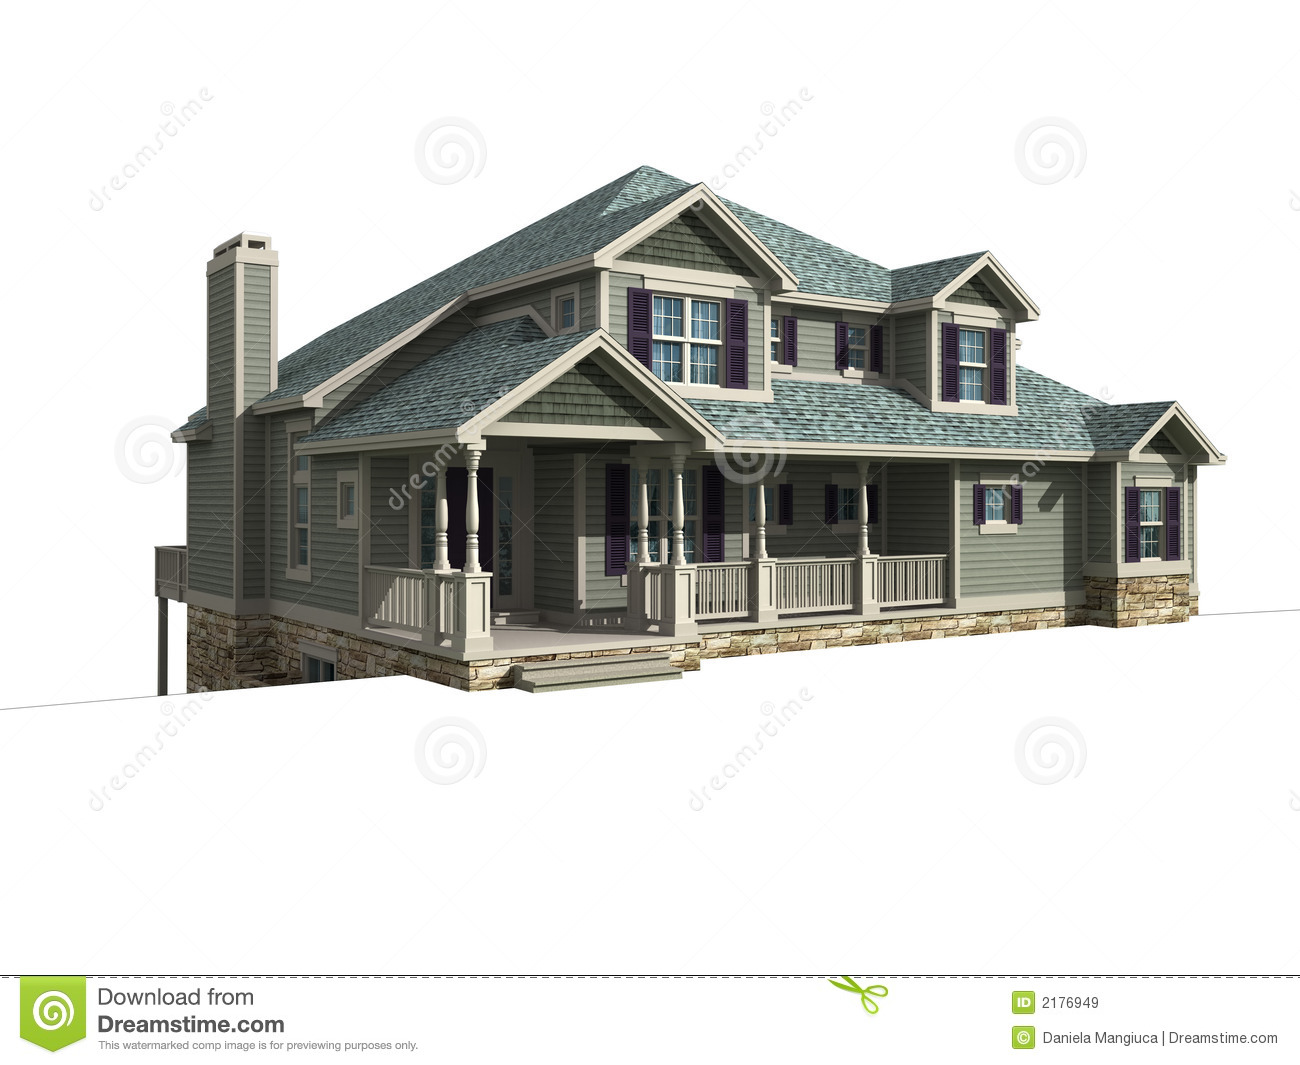 3d model of one level house stock illustration image for House designs 3d model